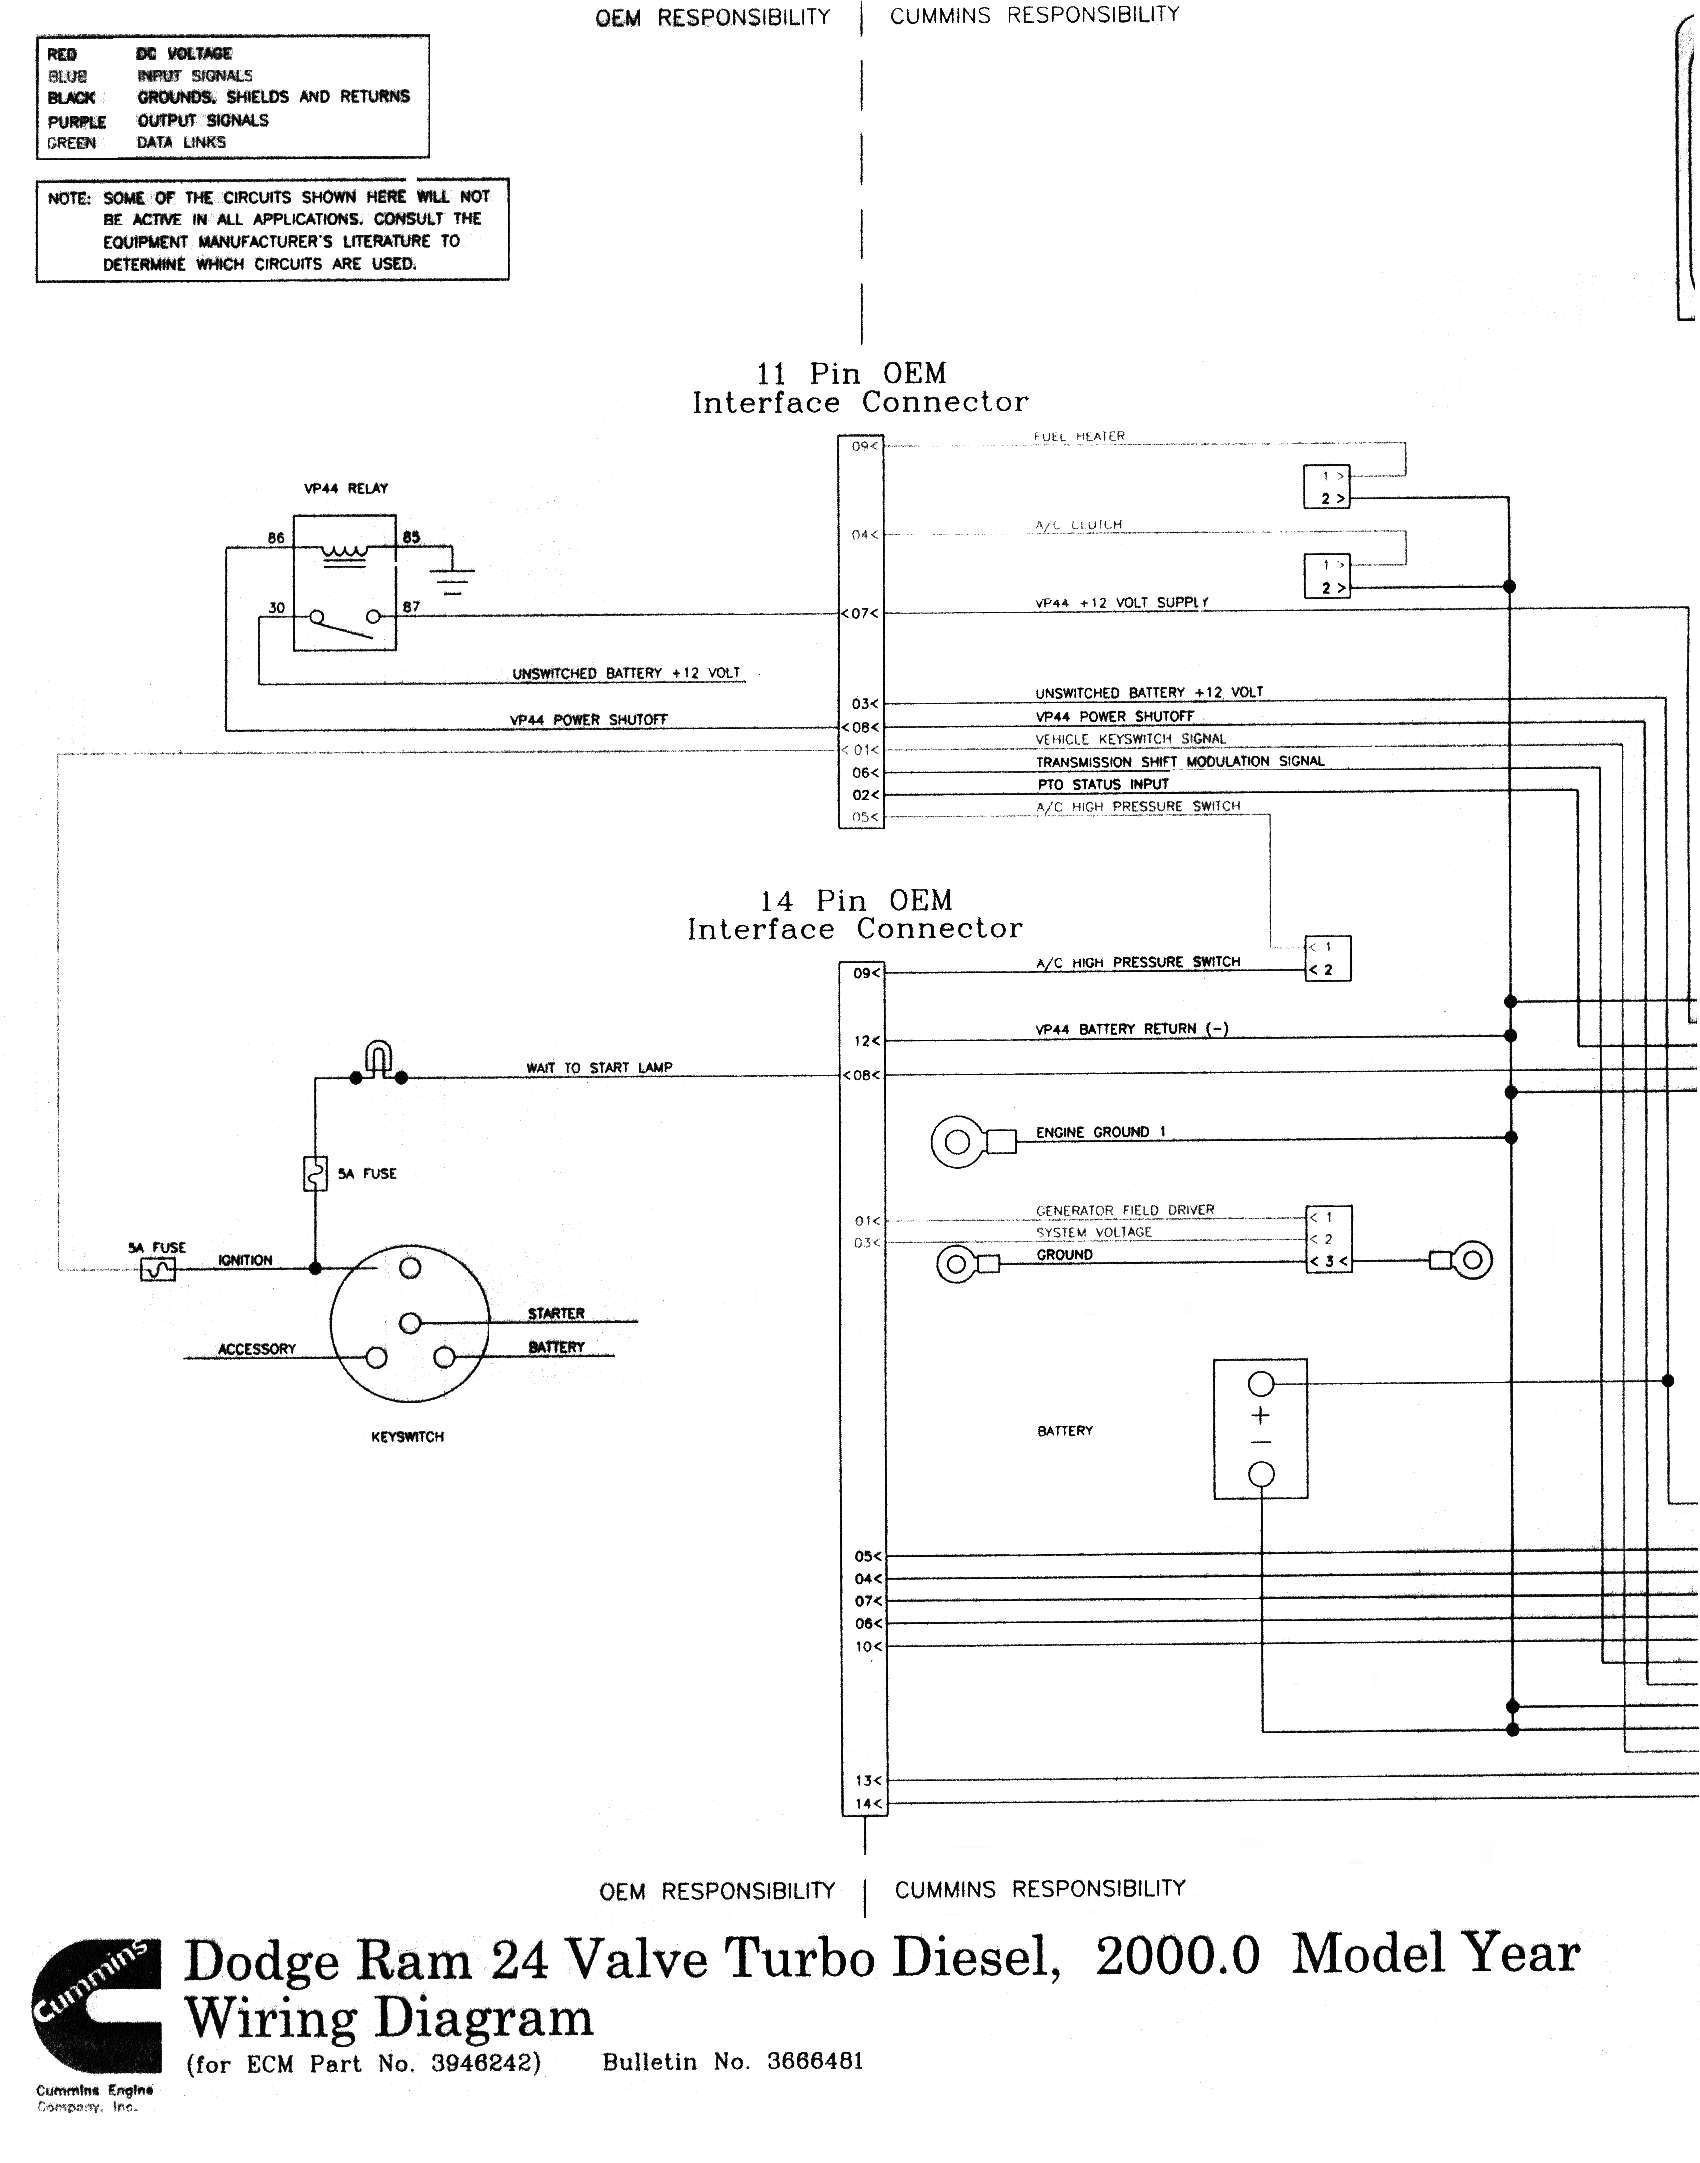 2005 Dodge Ram 2500 Wiring Diagram